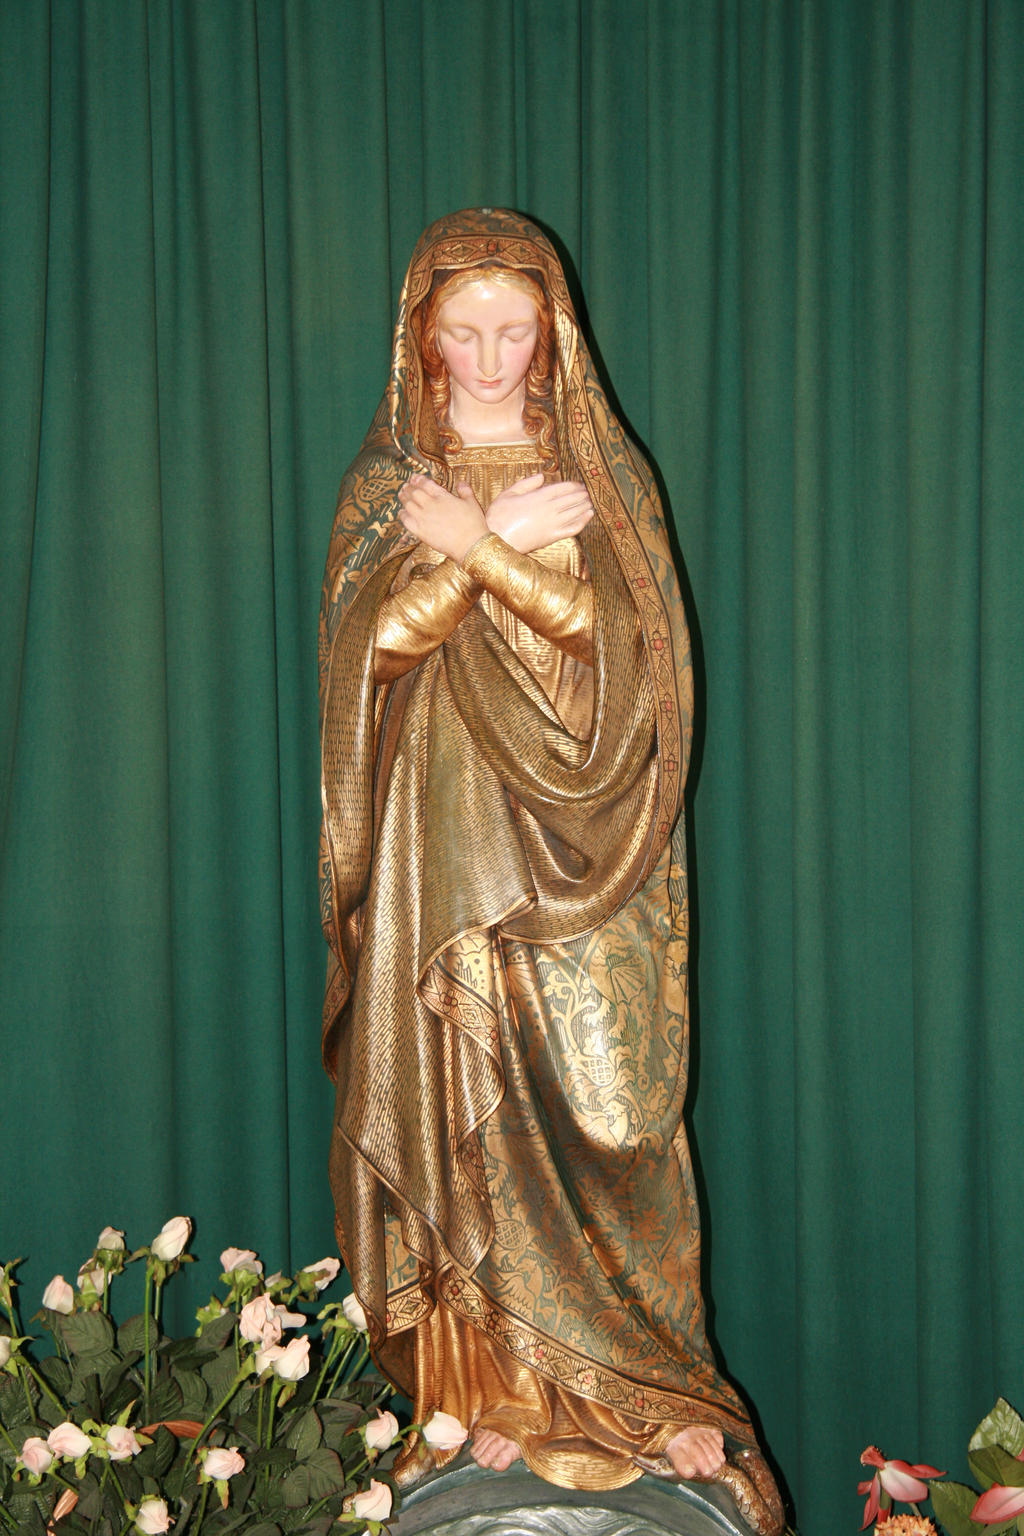 Statue of the Holy Virgin by Dewfooter